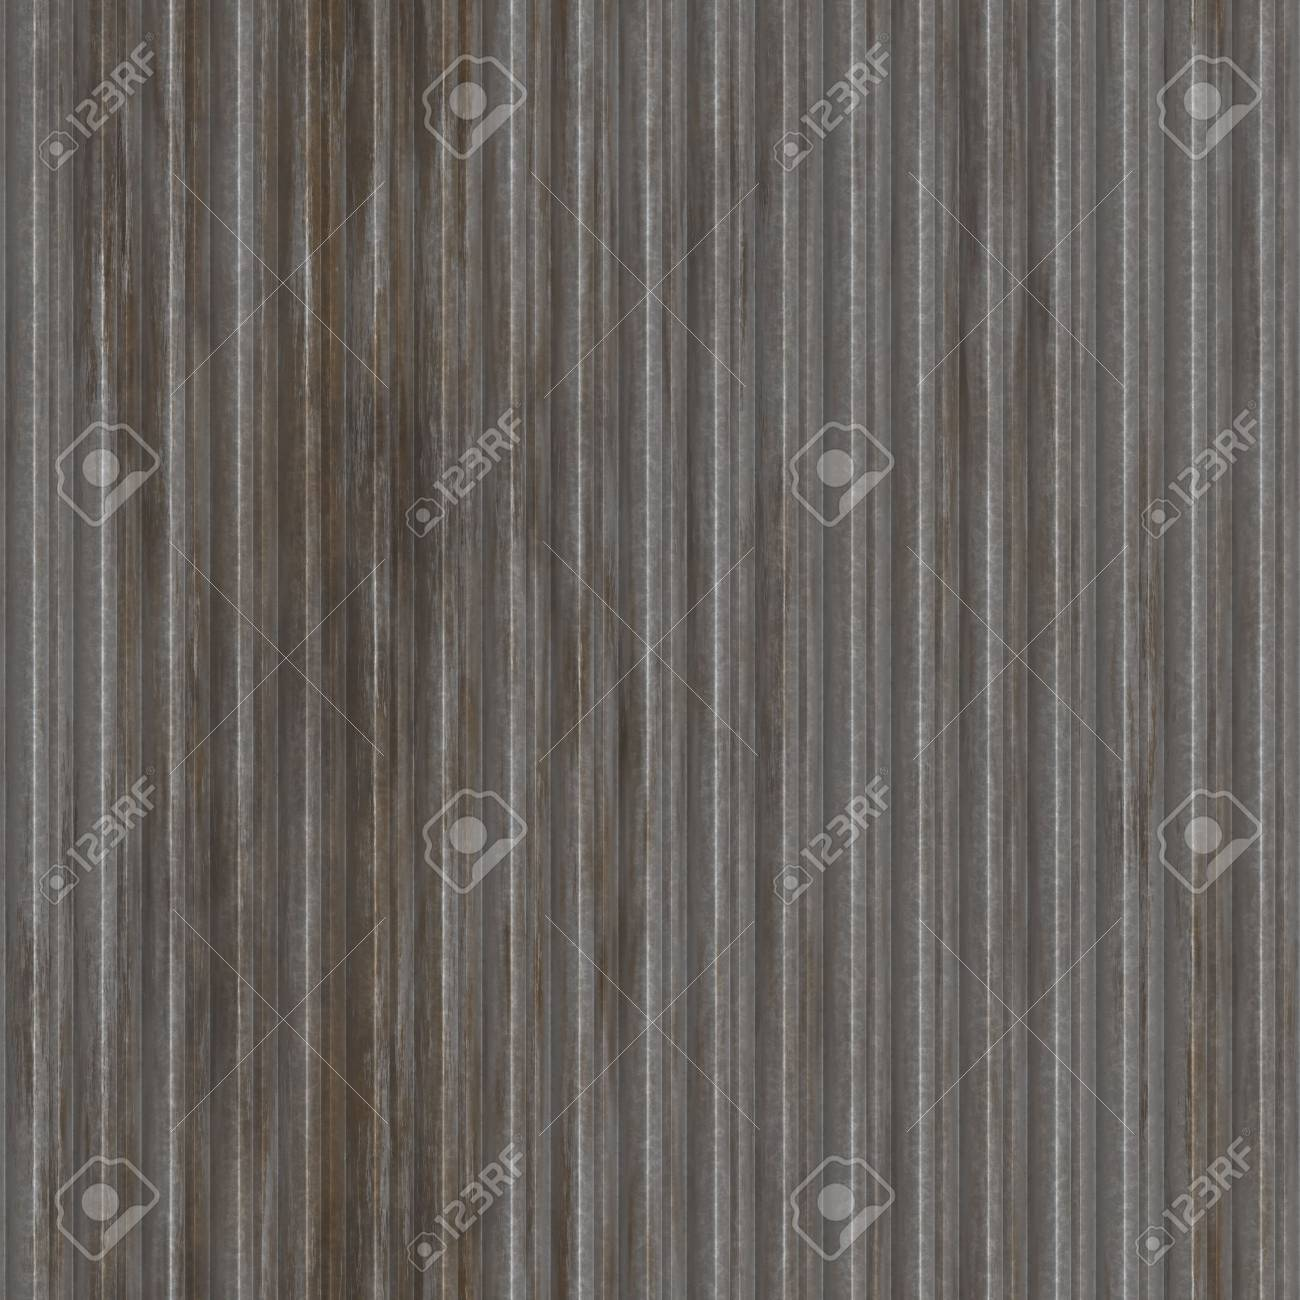 Corrugated metal ridged surface with corrosion seamless texture Stock Photo - 6165740